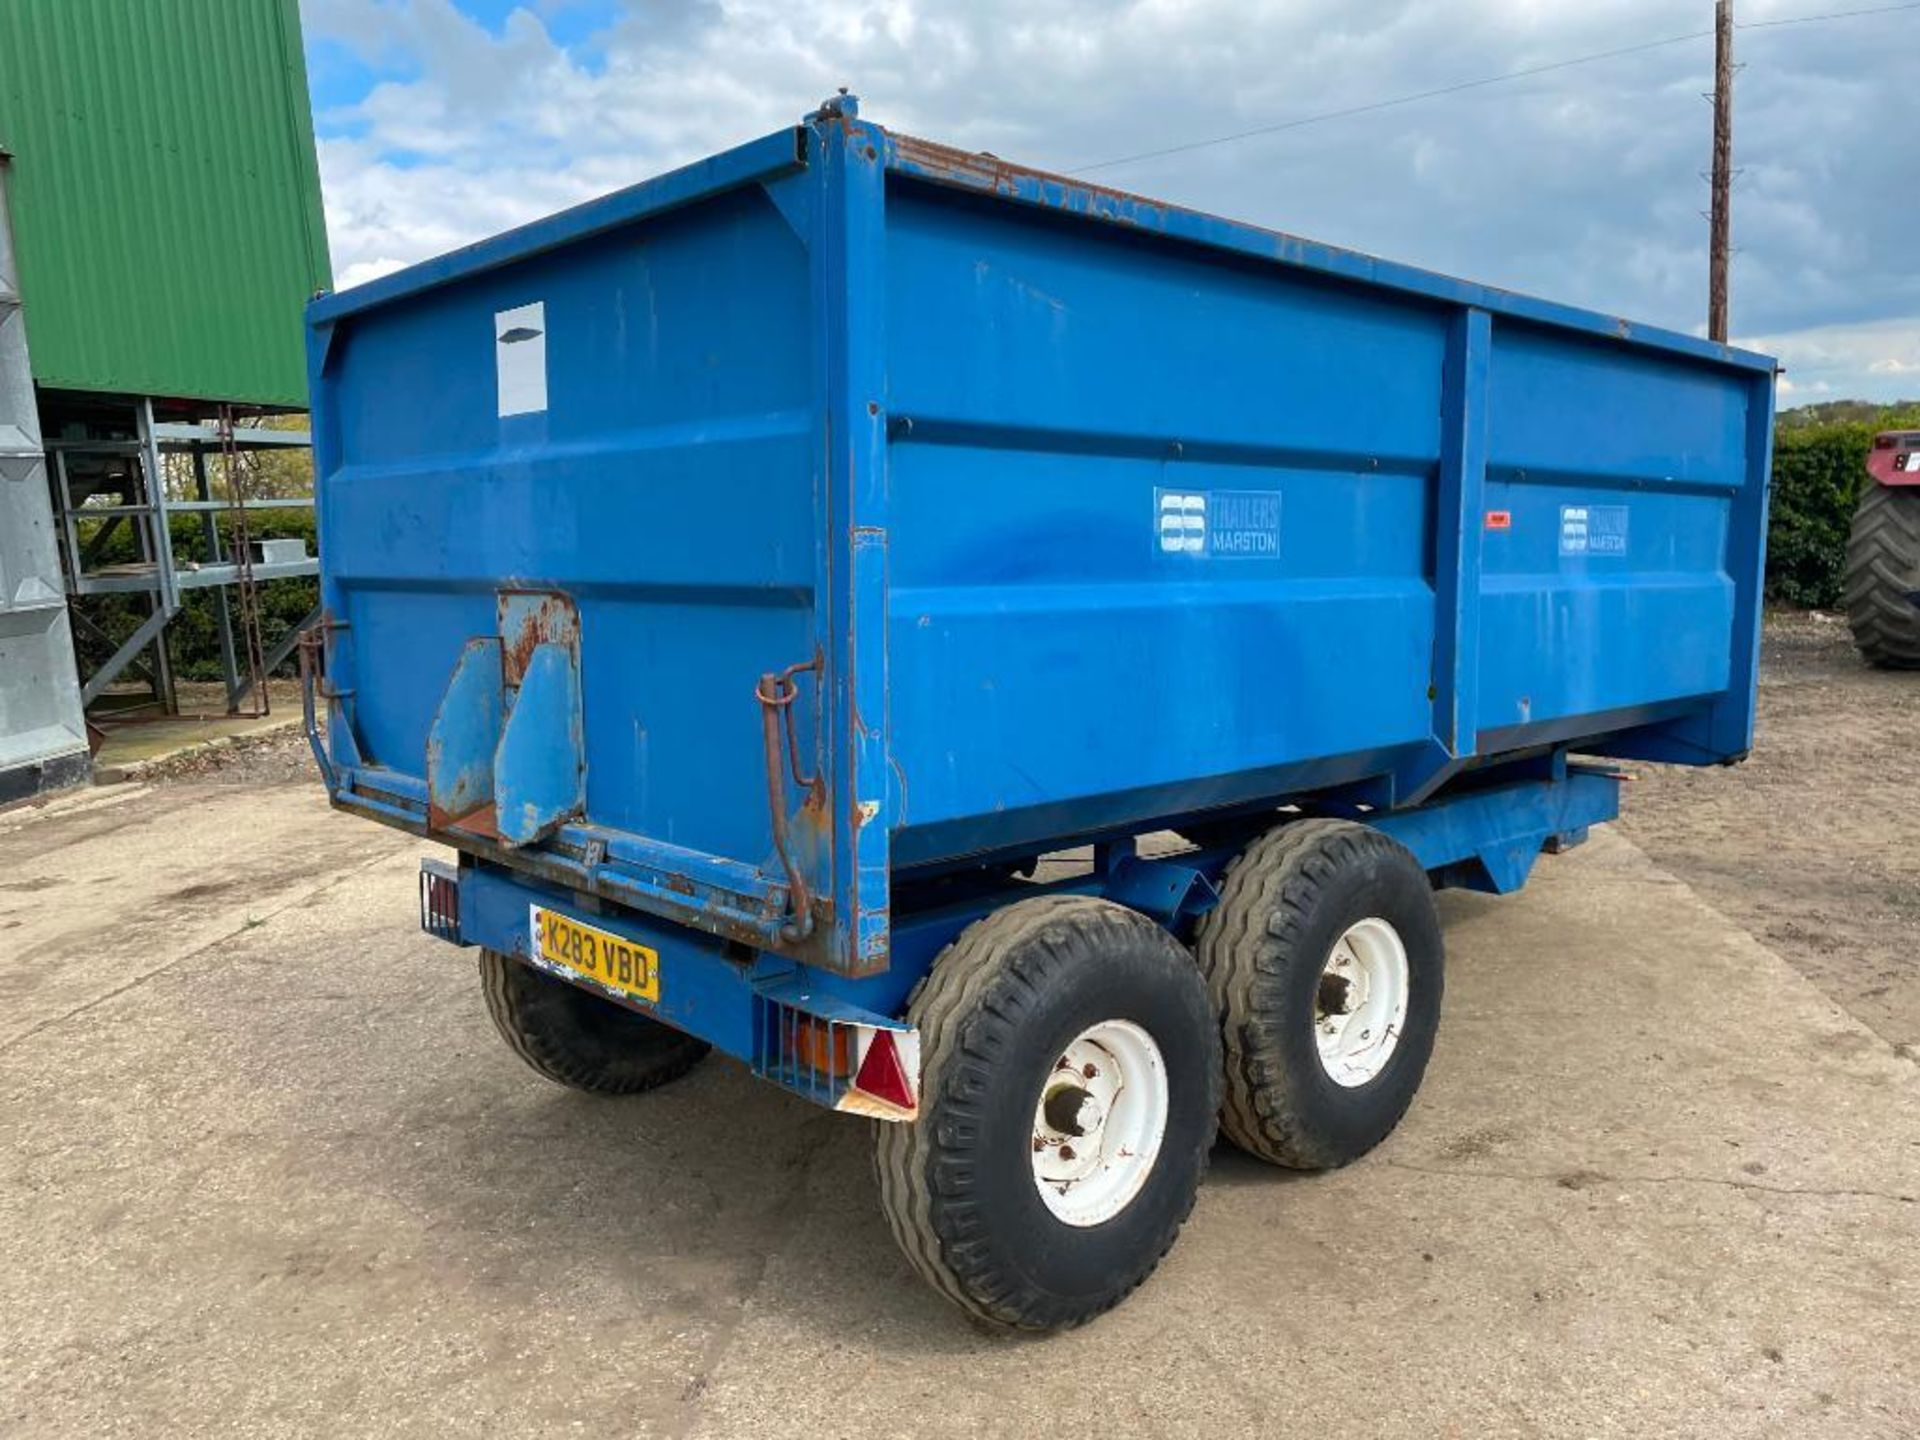 1986 AS Marston 8t twin axle grain trailer, manual tailgate and grain chute on 12.5/80-15.3 wheels a - Image 9 of 14